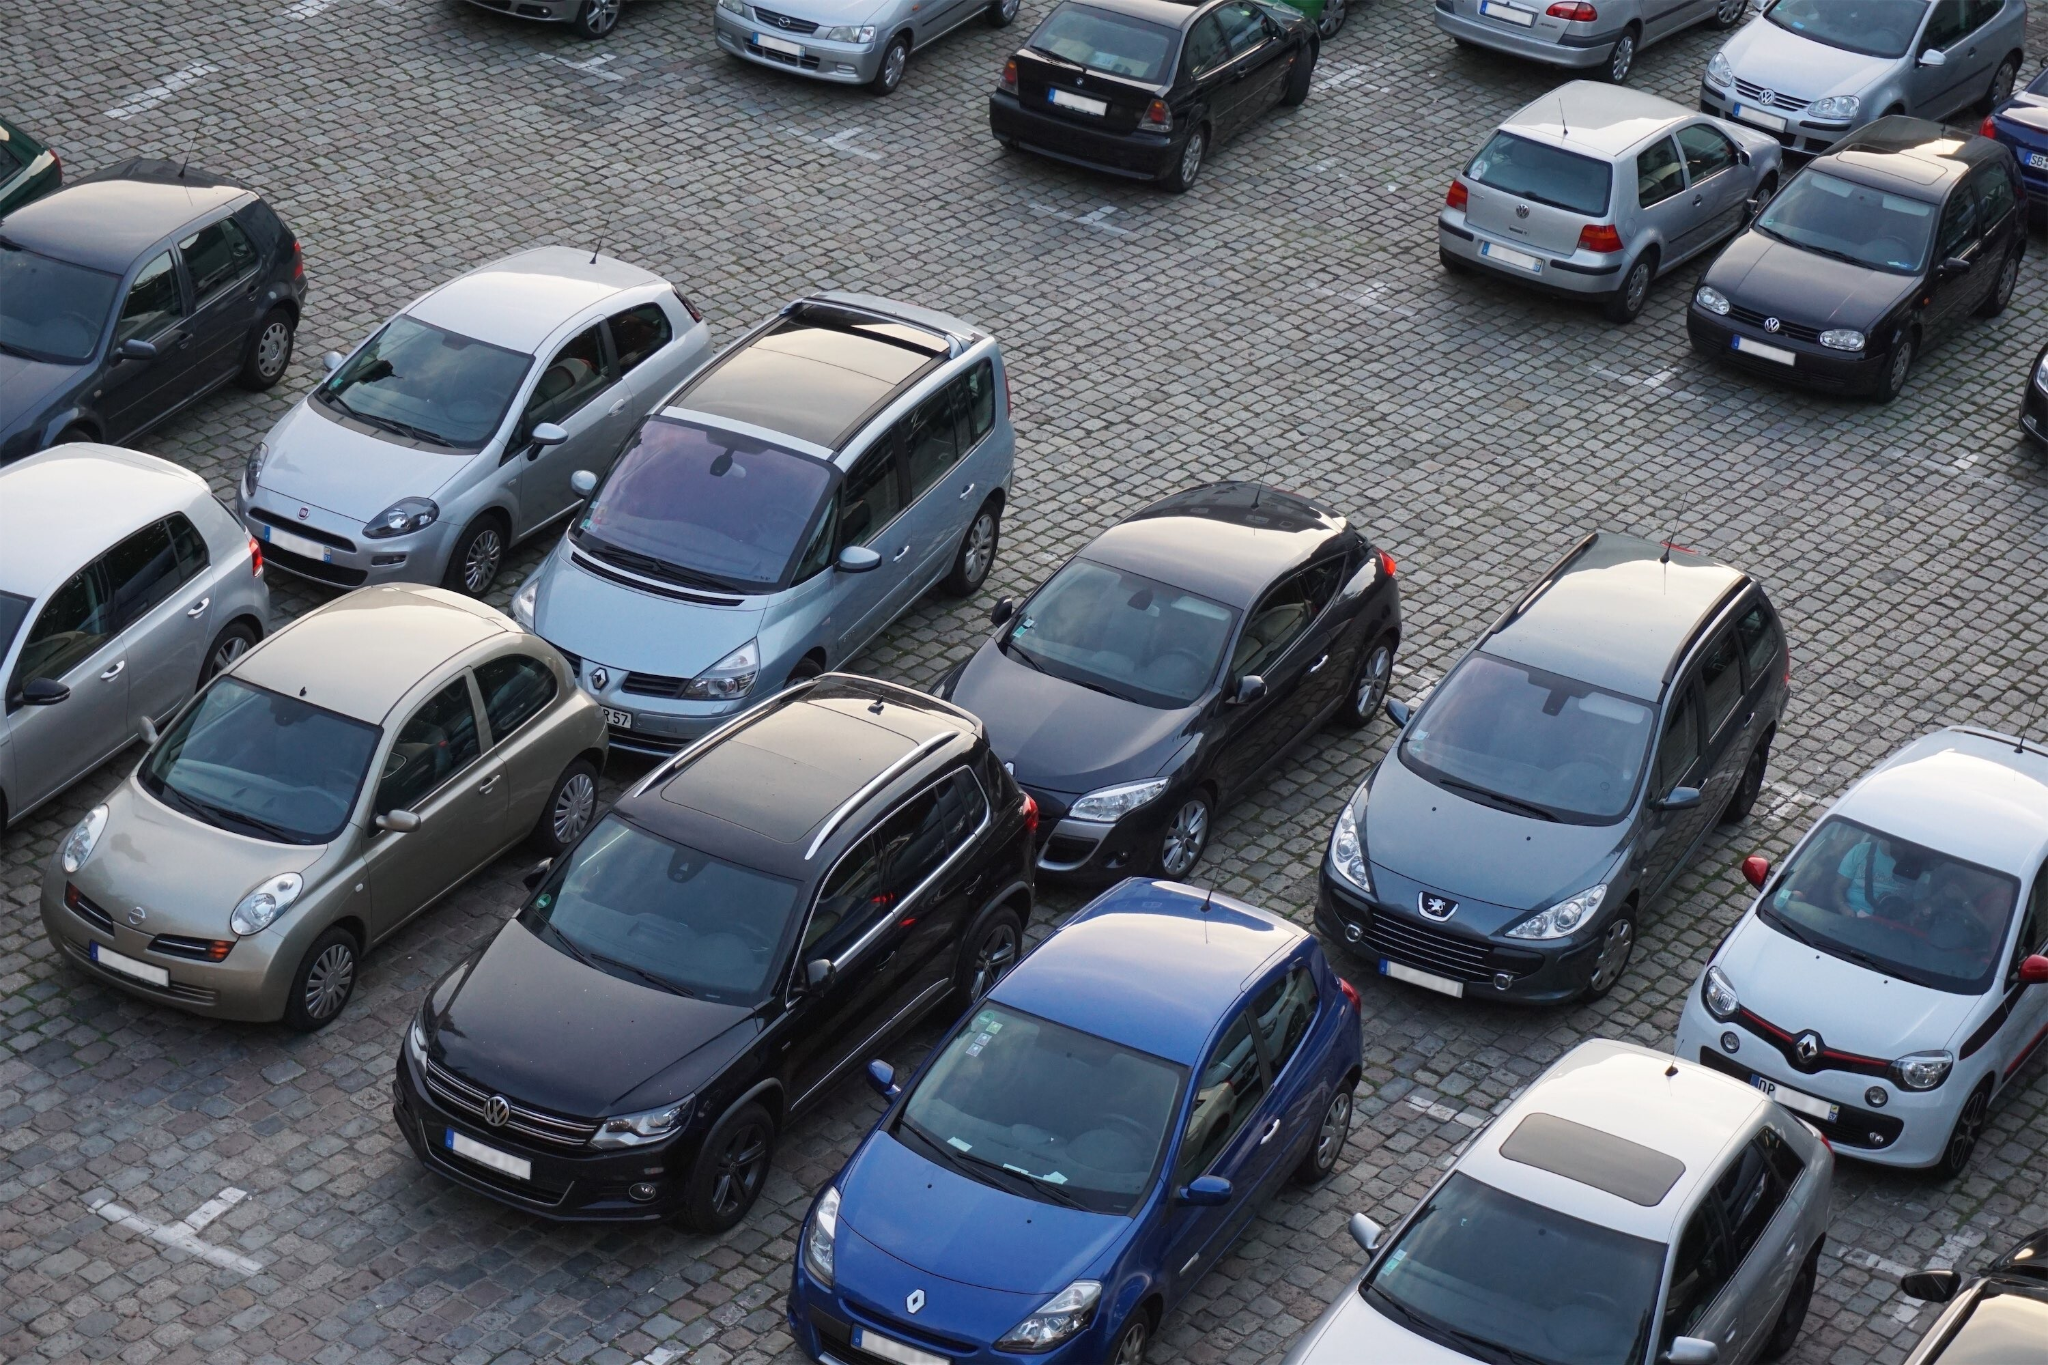 The problem of finding parking spaces and approaches to its solution - Image 2